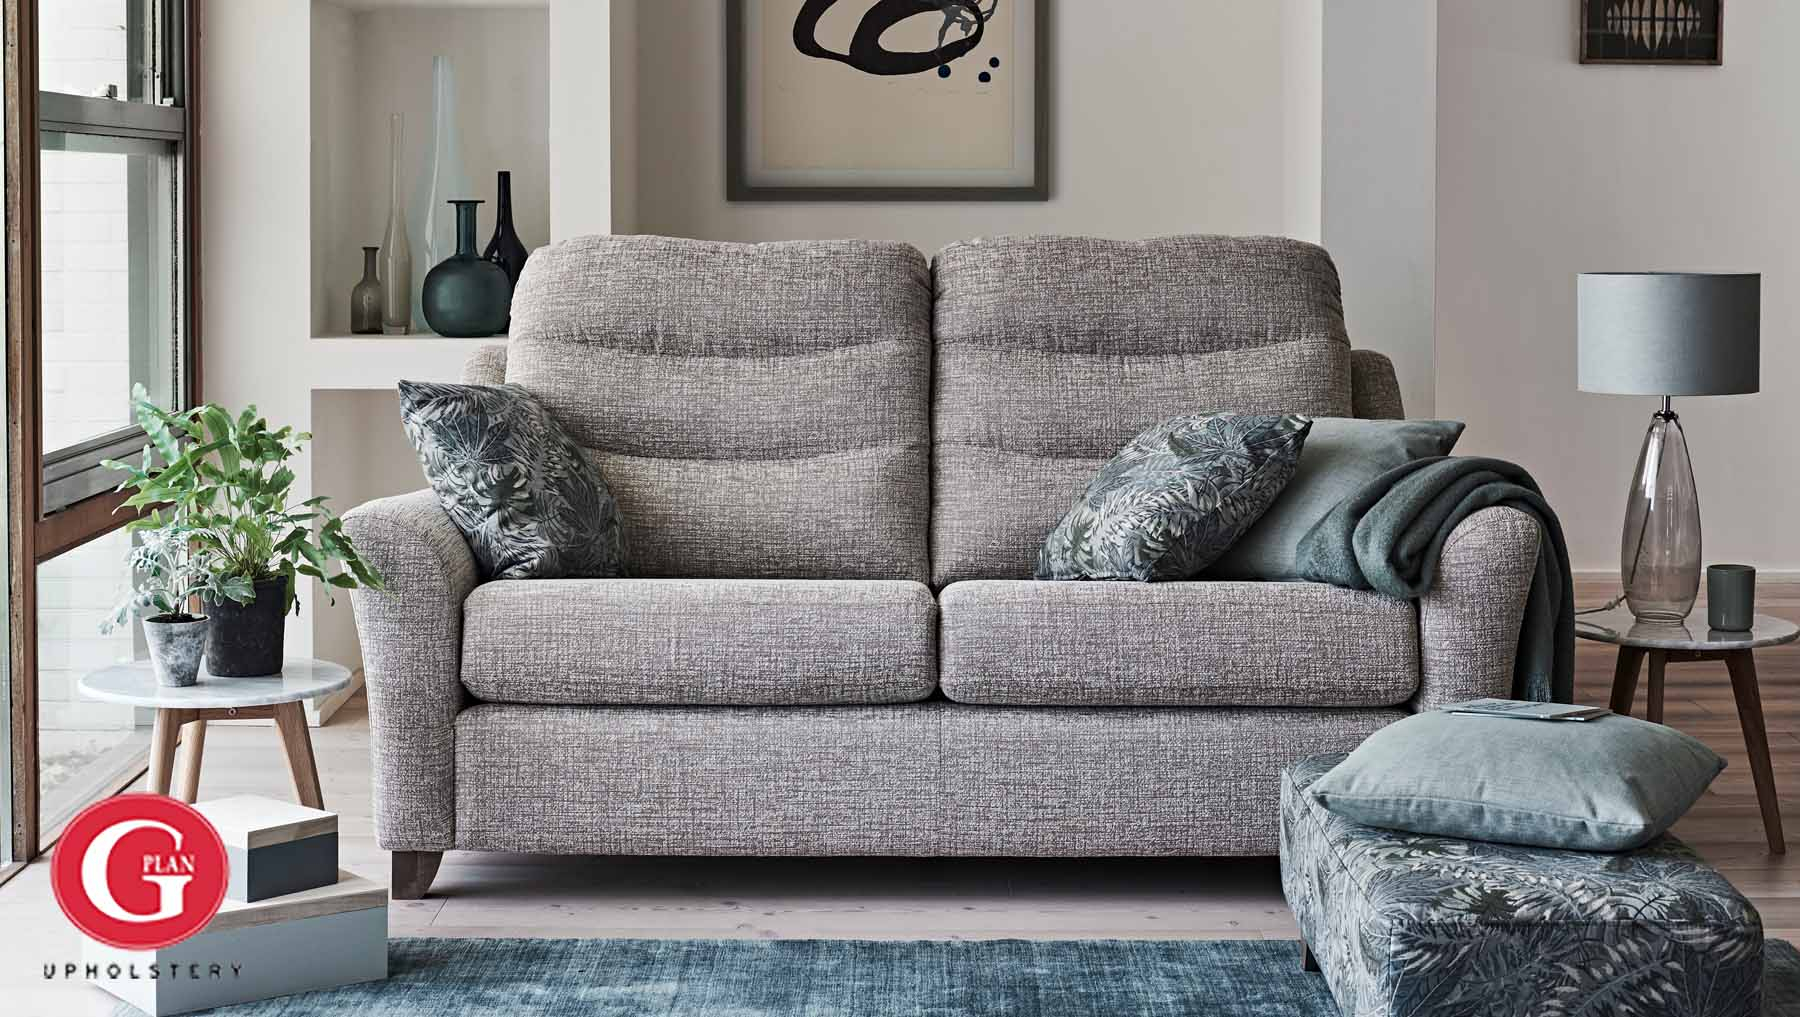 G Plan Tate – Fabric Ranges – Sofas & Chairs | Tr Hayes – Furniture In Tate Arm Sofa Chairs (Image 5 of 20)